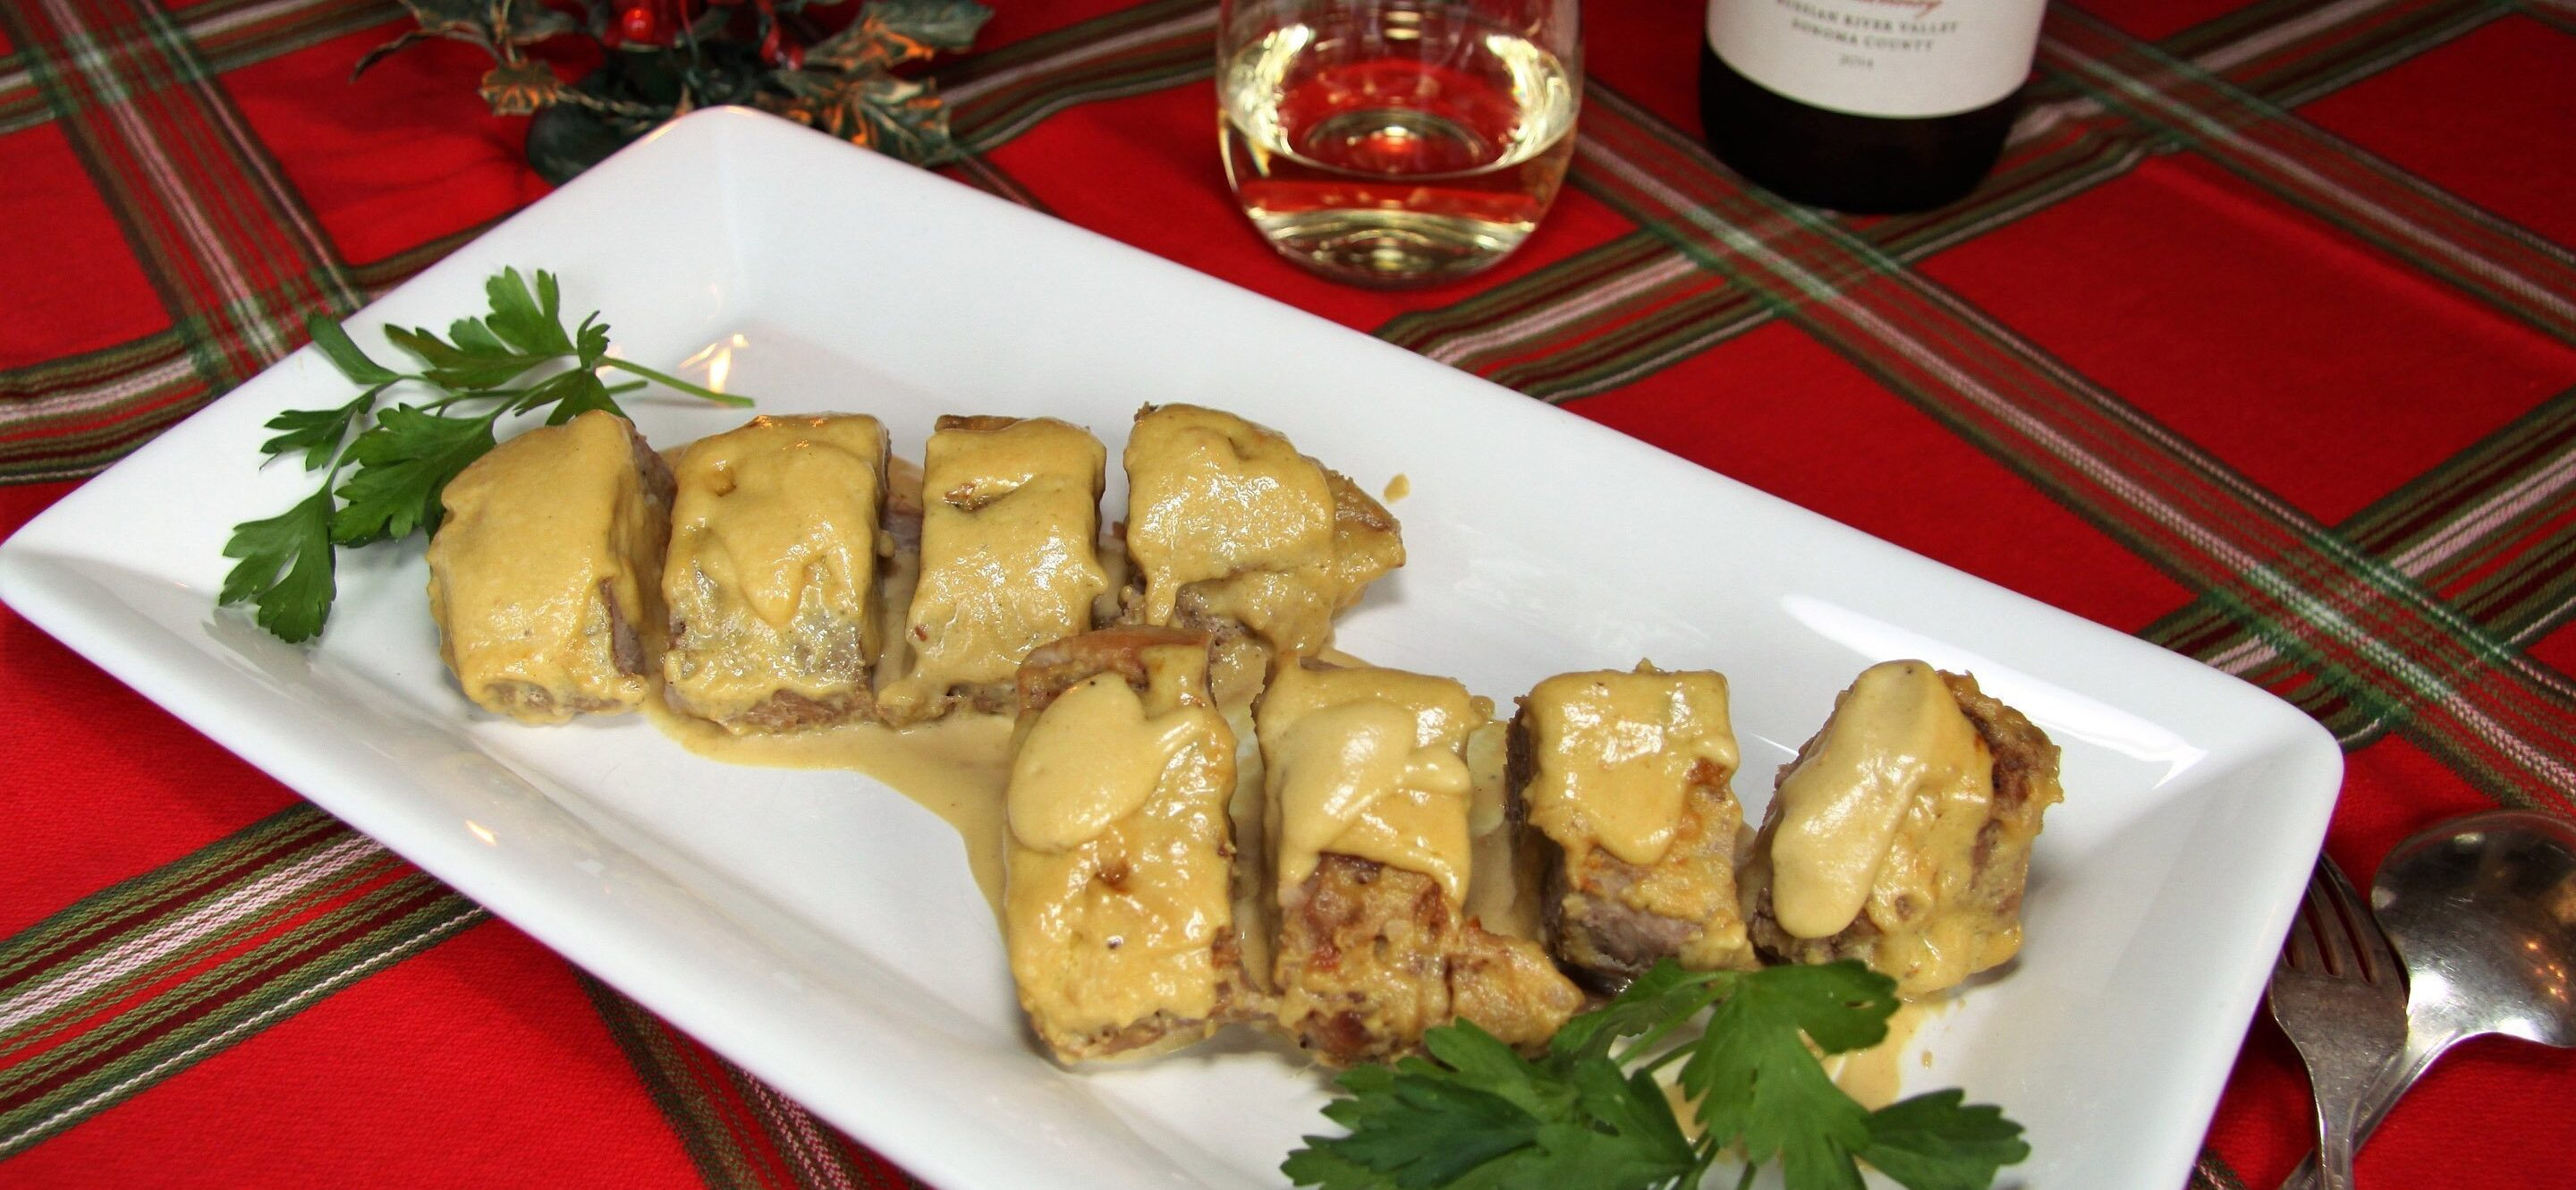 Pork tenderloin with Cream and Mustard